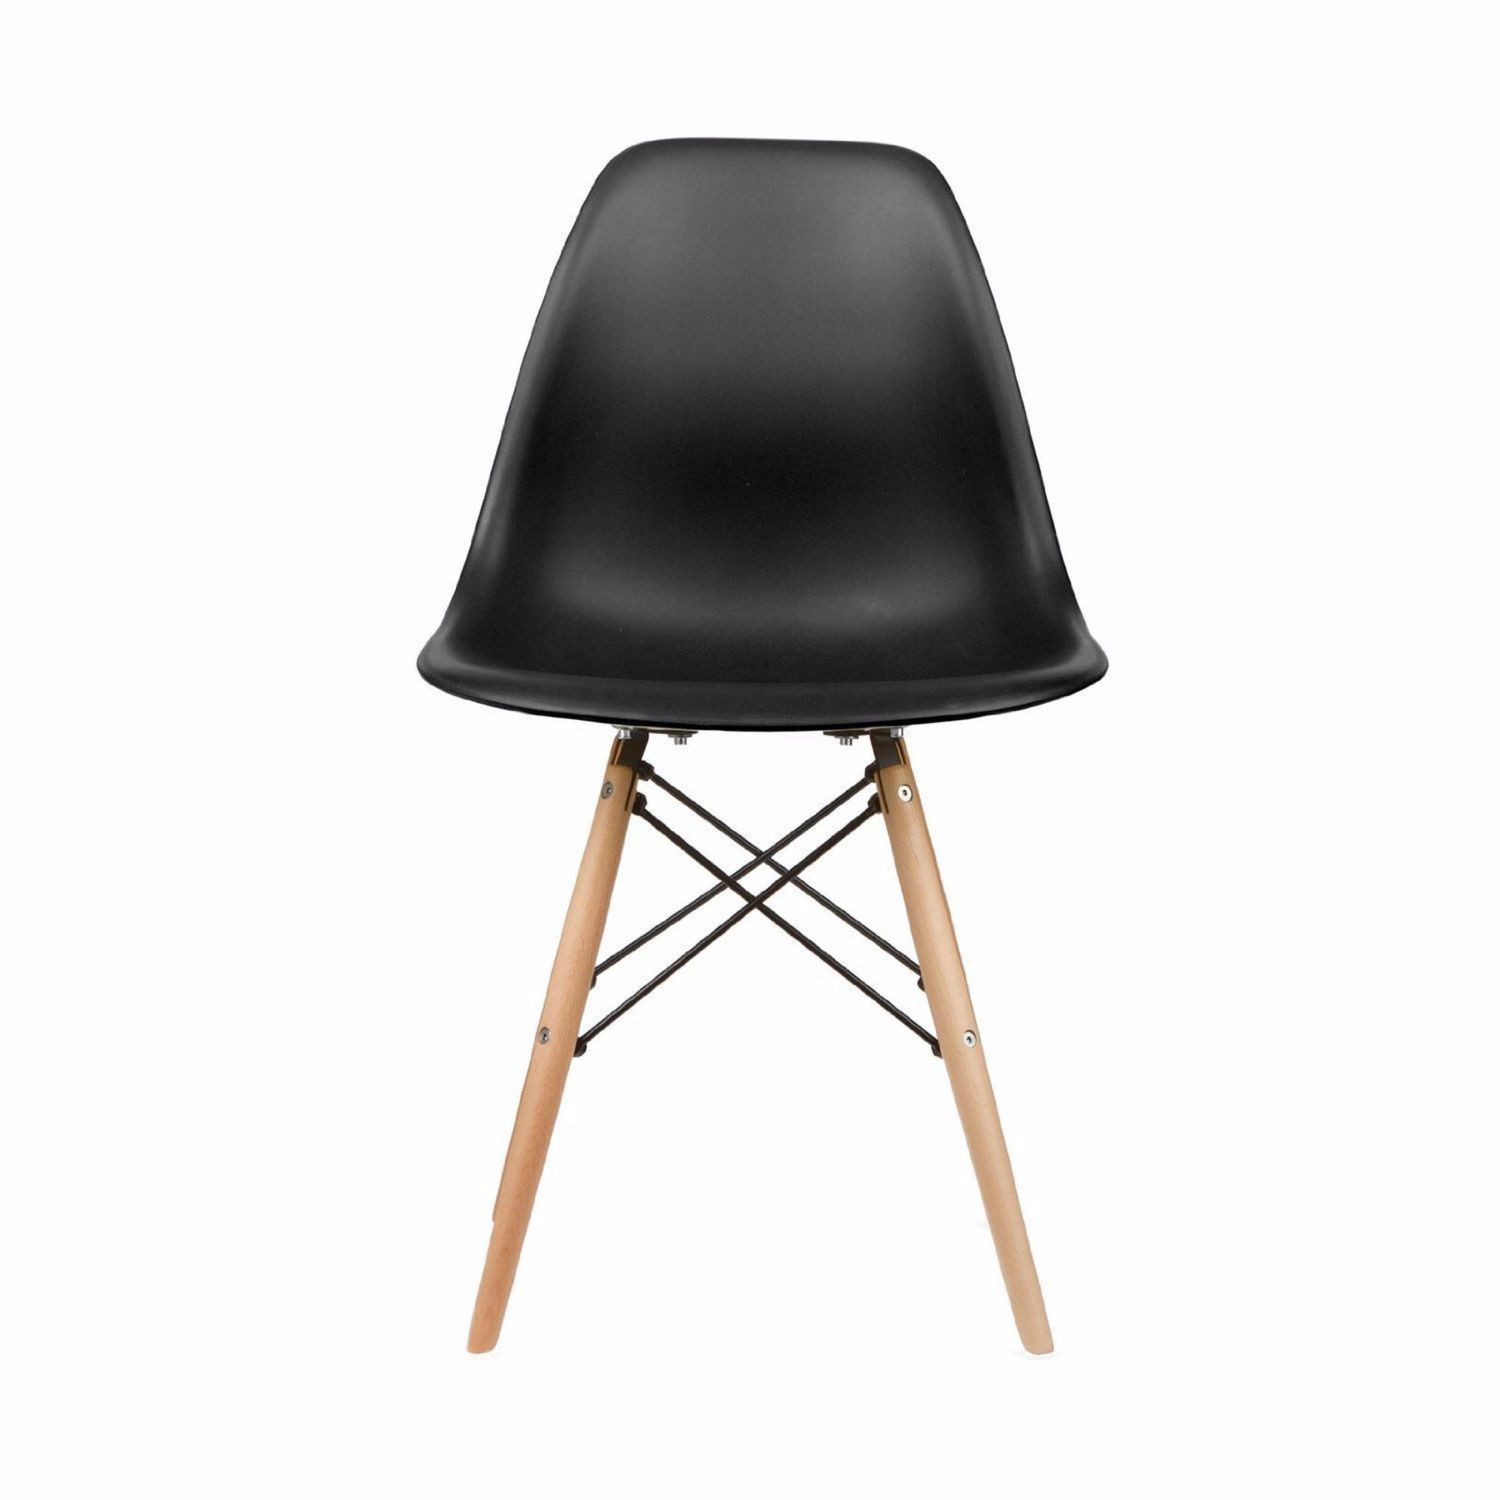 Eames Style Plastic Dining Chairs